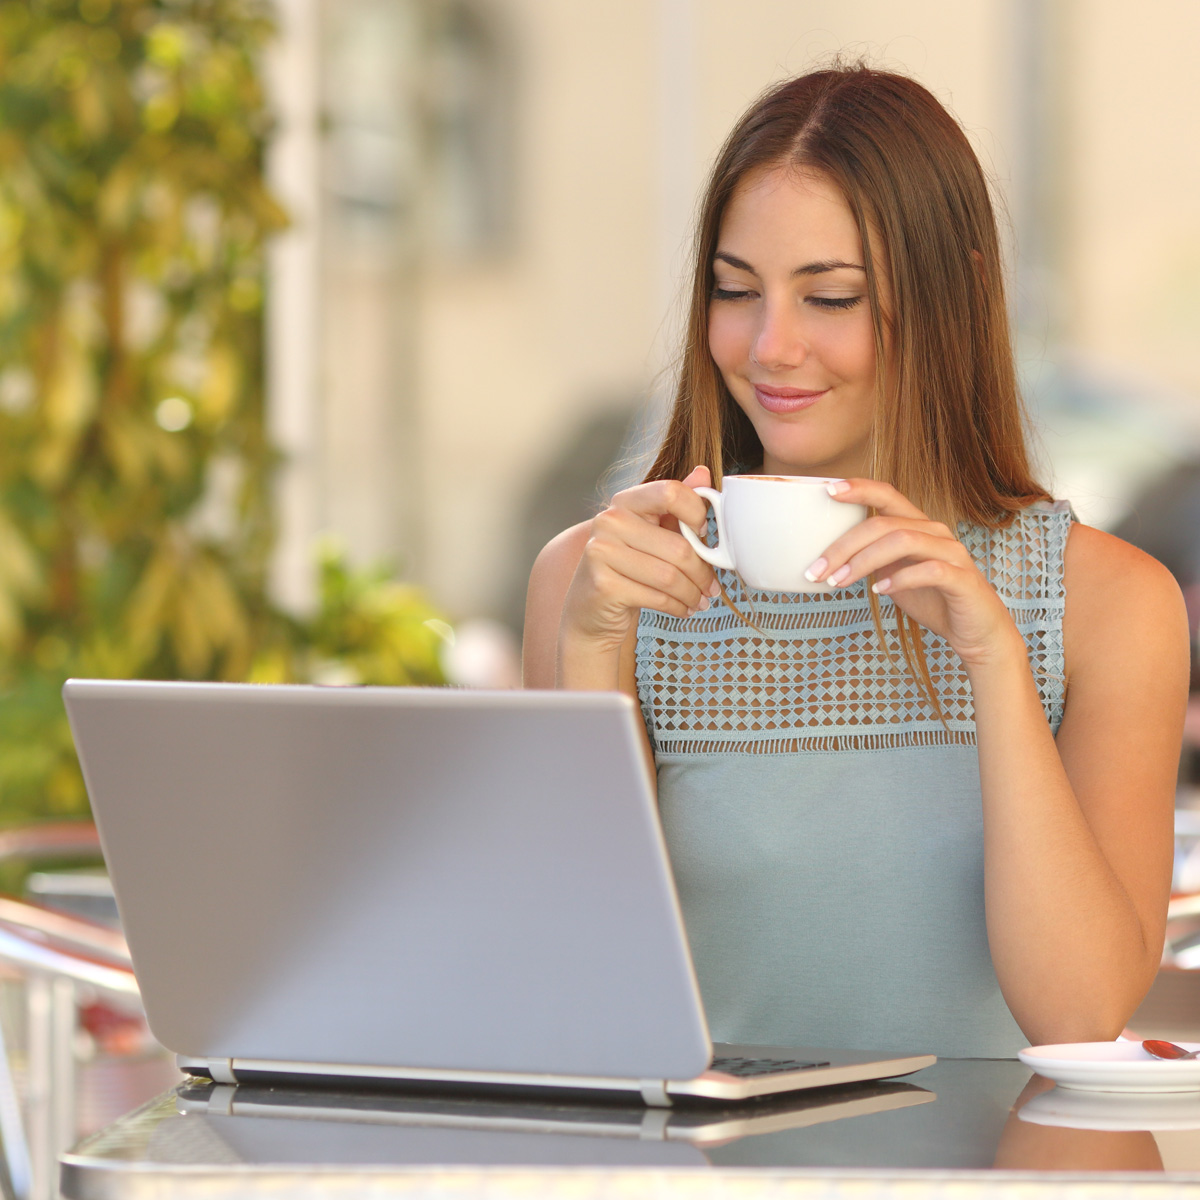 Young, self-employed woman sipping coffee and working on a laptop